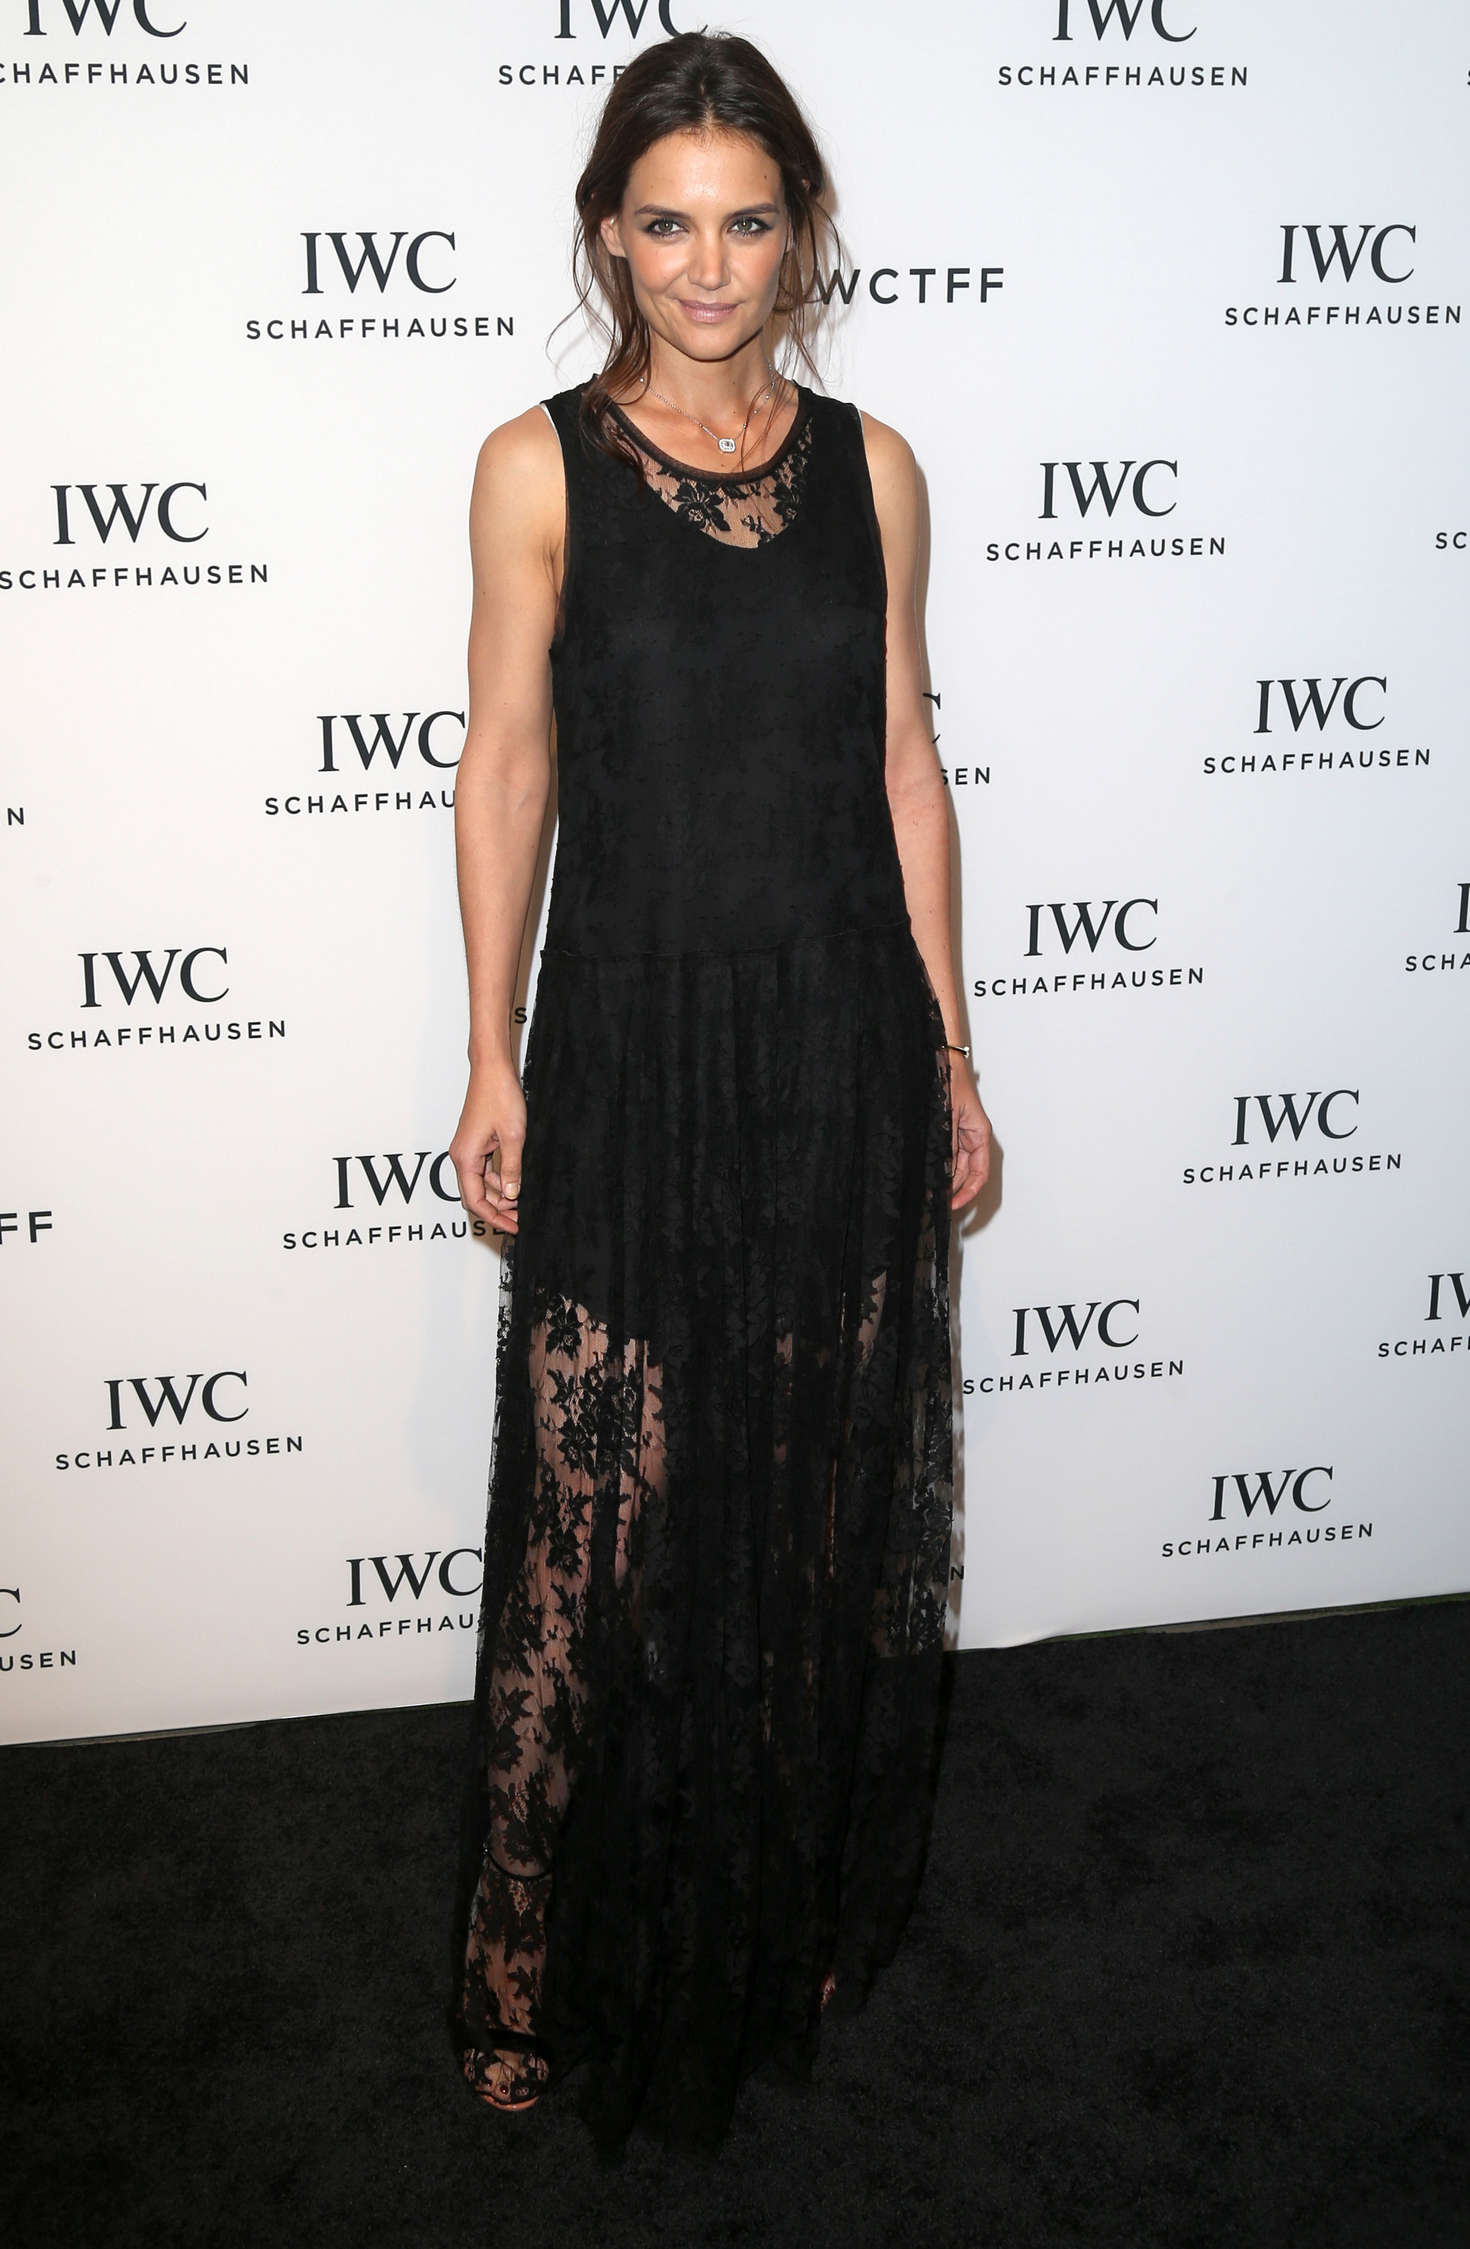 Katie Holmes 2016 : Katie Holmes: For The Love Of Cinema Dinner at Tribeca Film Fest 2016 -09